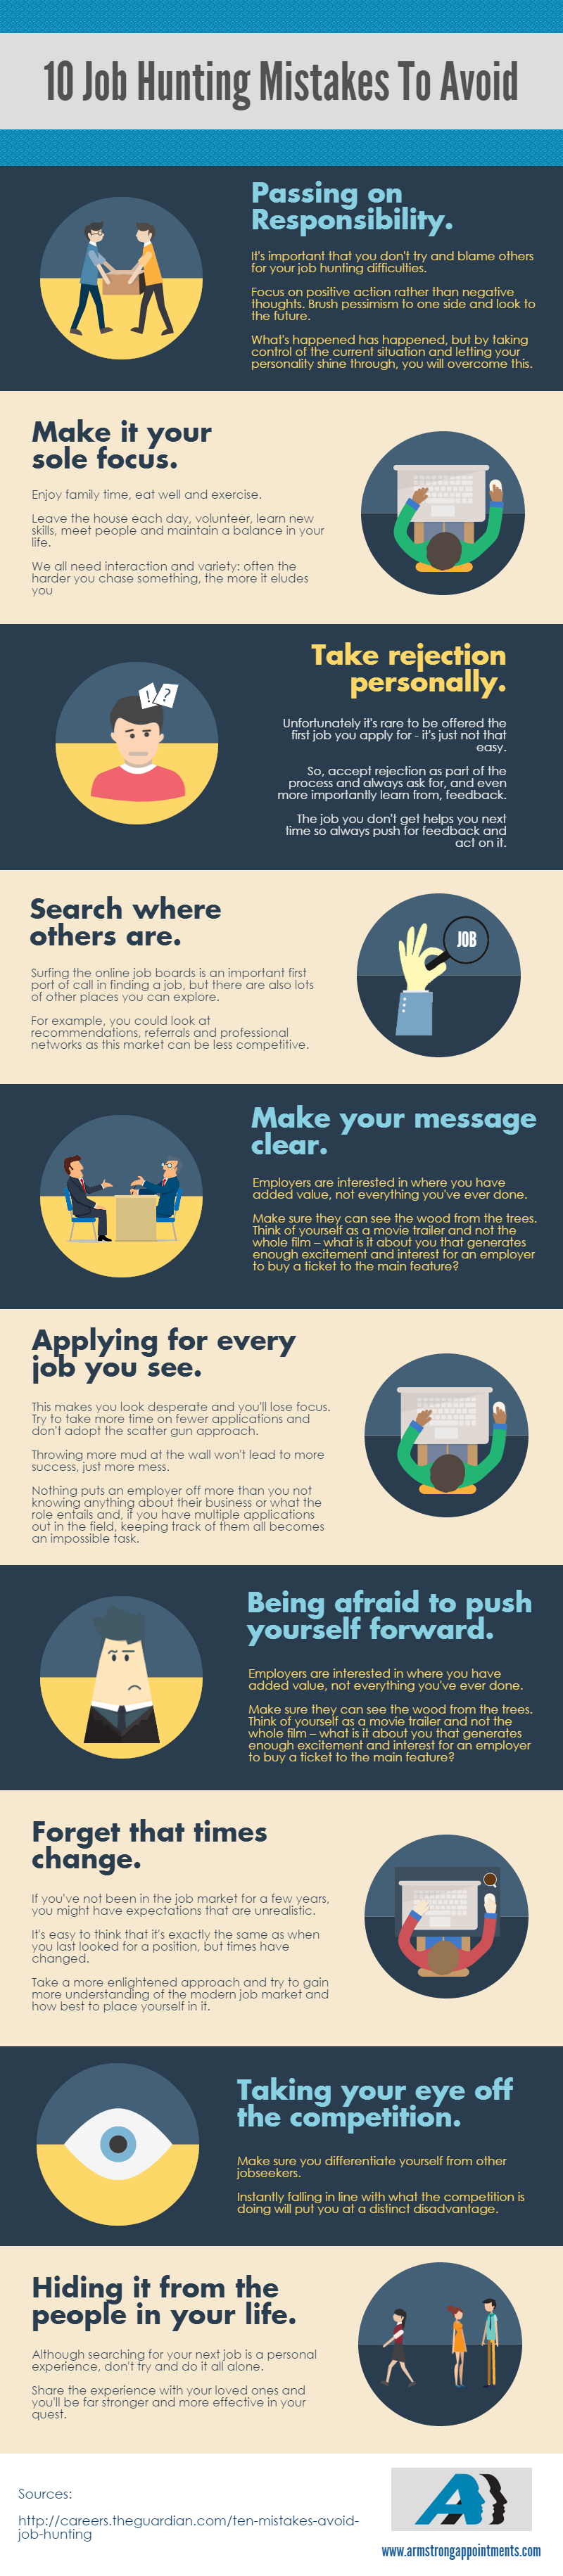 Top Job Hunting Mistakes You Must Avoid [INFOGRAPHIC]  Http://theundercoverrecruiter.